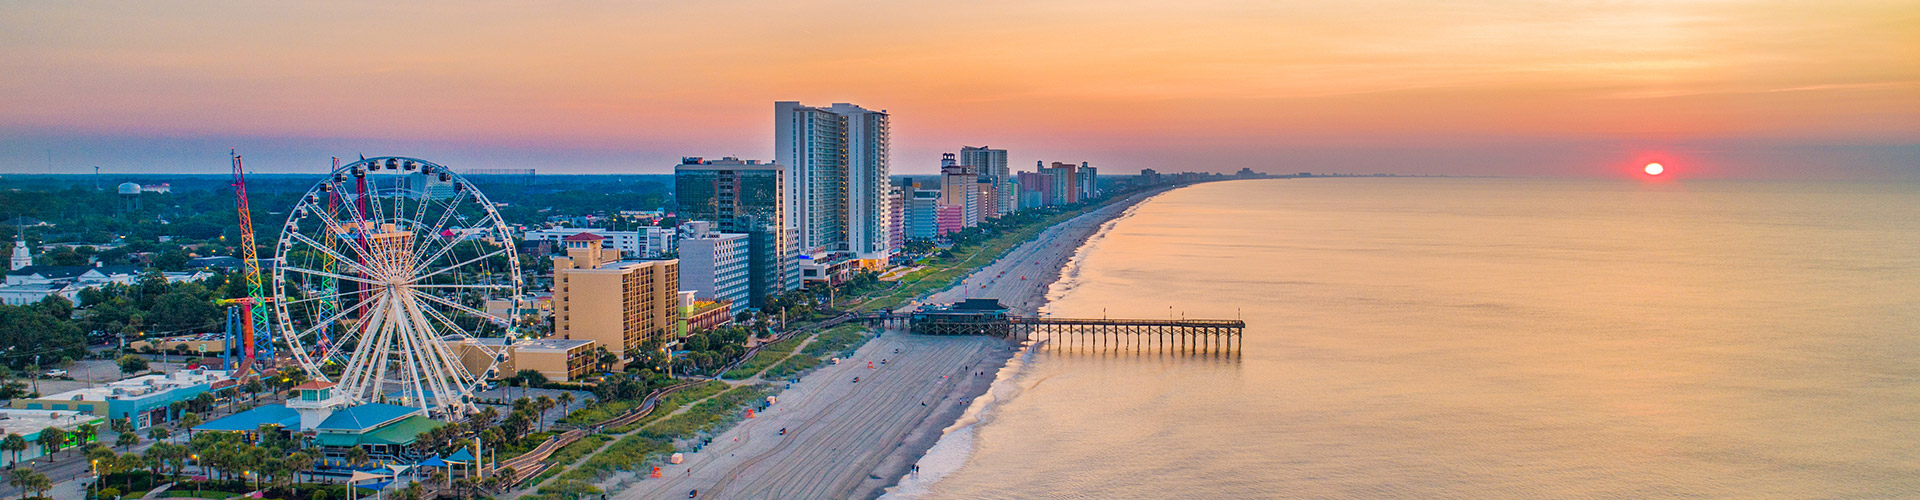 Myrtle Beach SkyWheel shoreline aerial